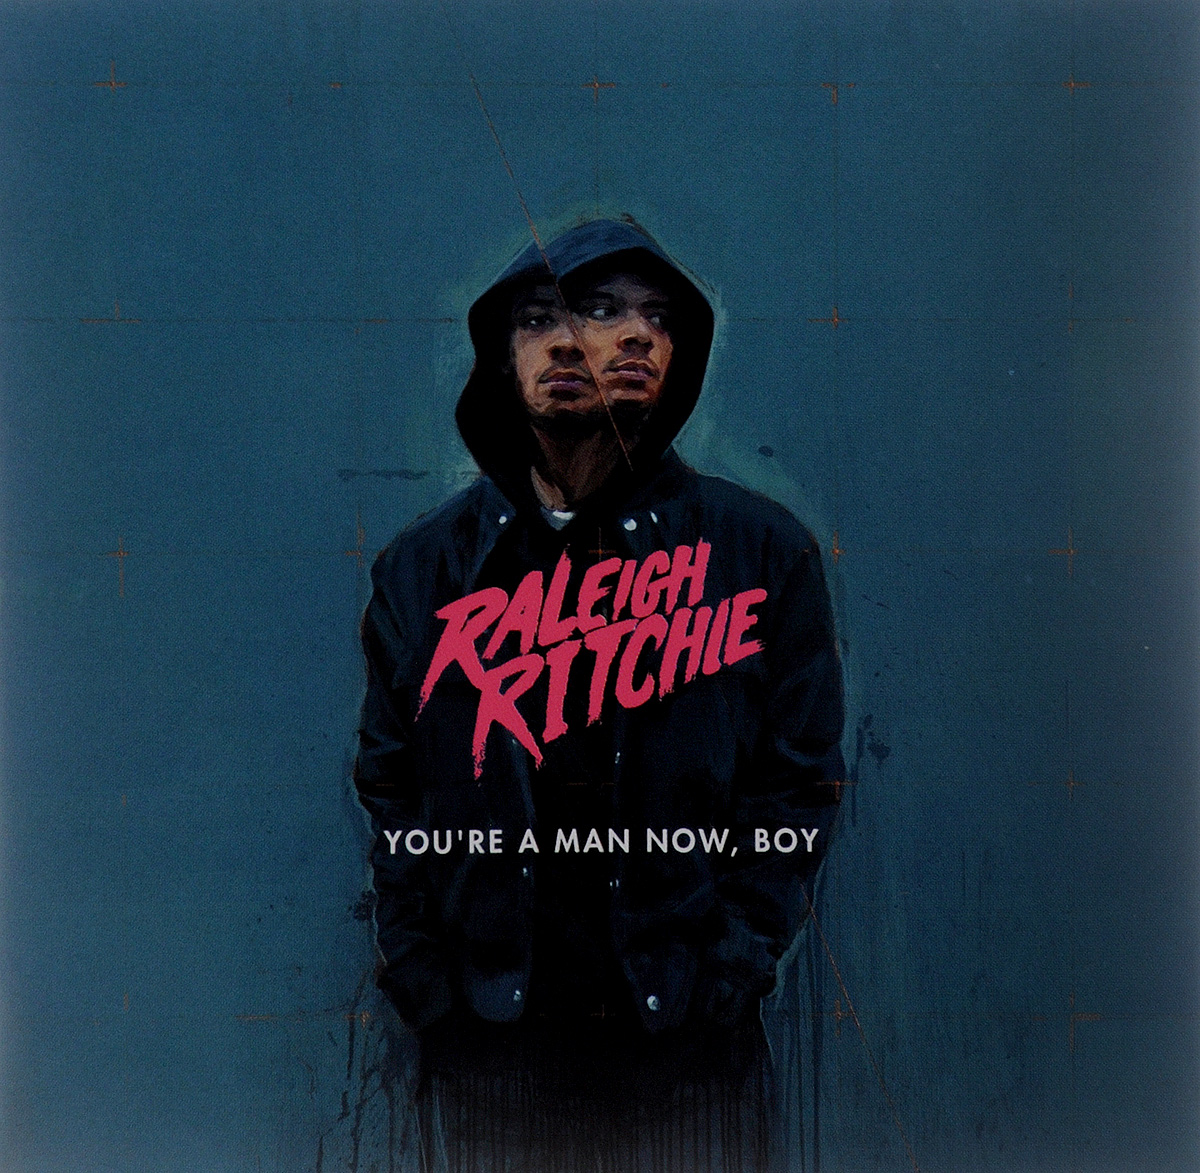 Raleigh Ritchie Raleigh Ritchie. You're A Man Now, Boy gosse edmund raleigh